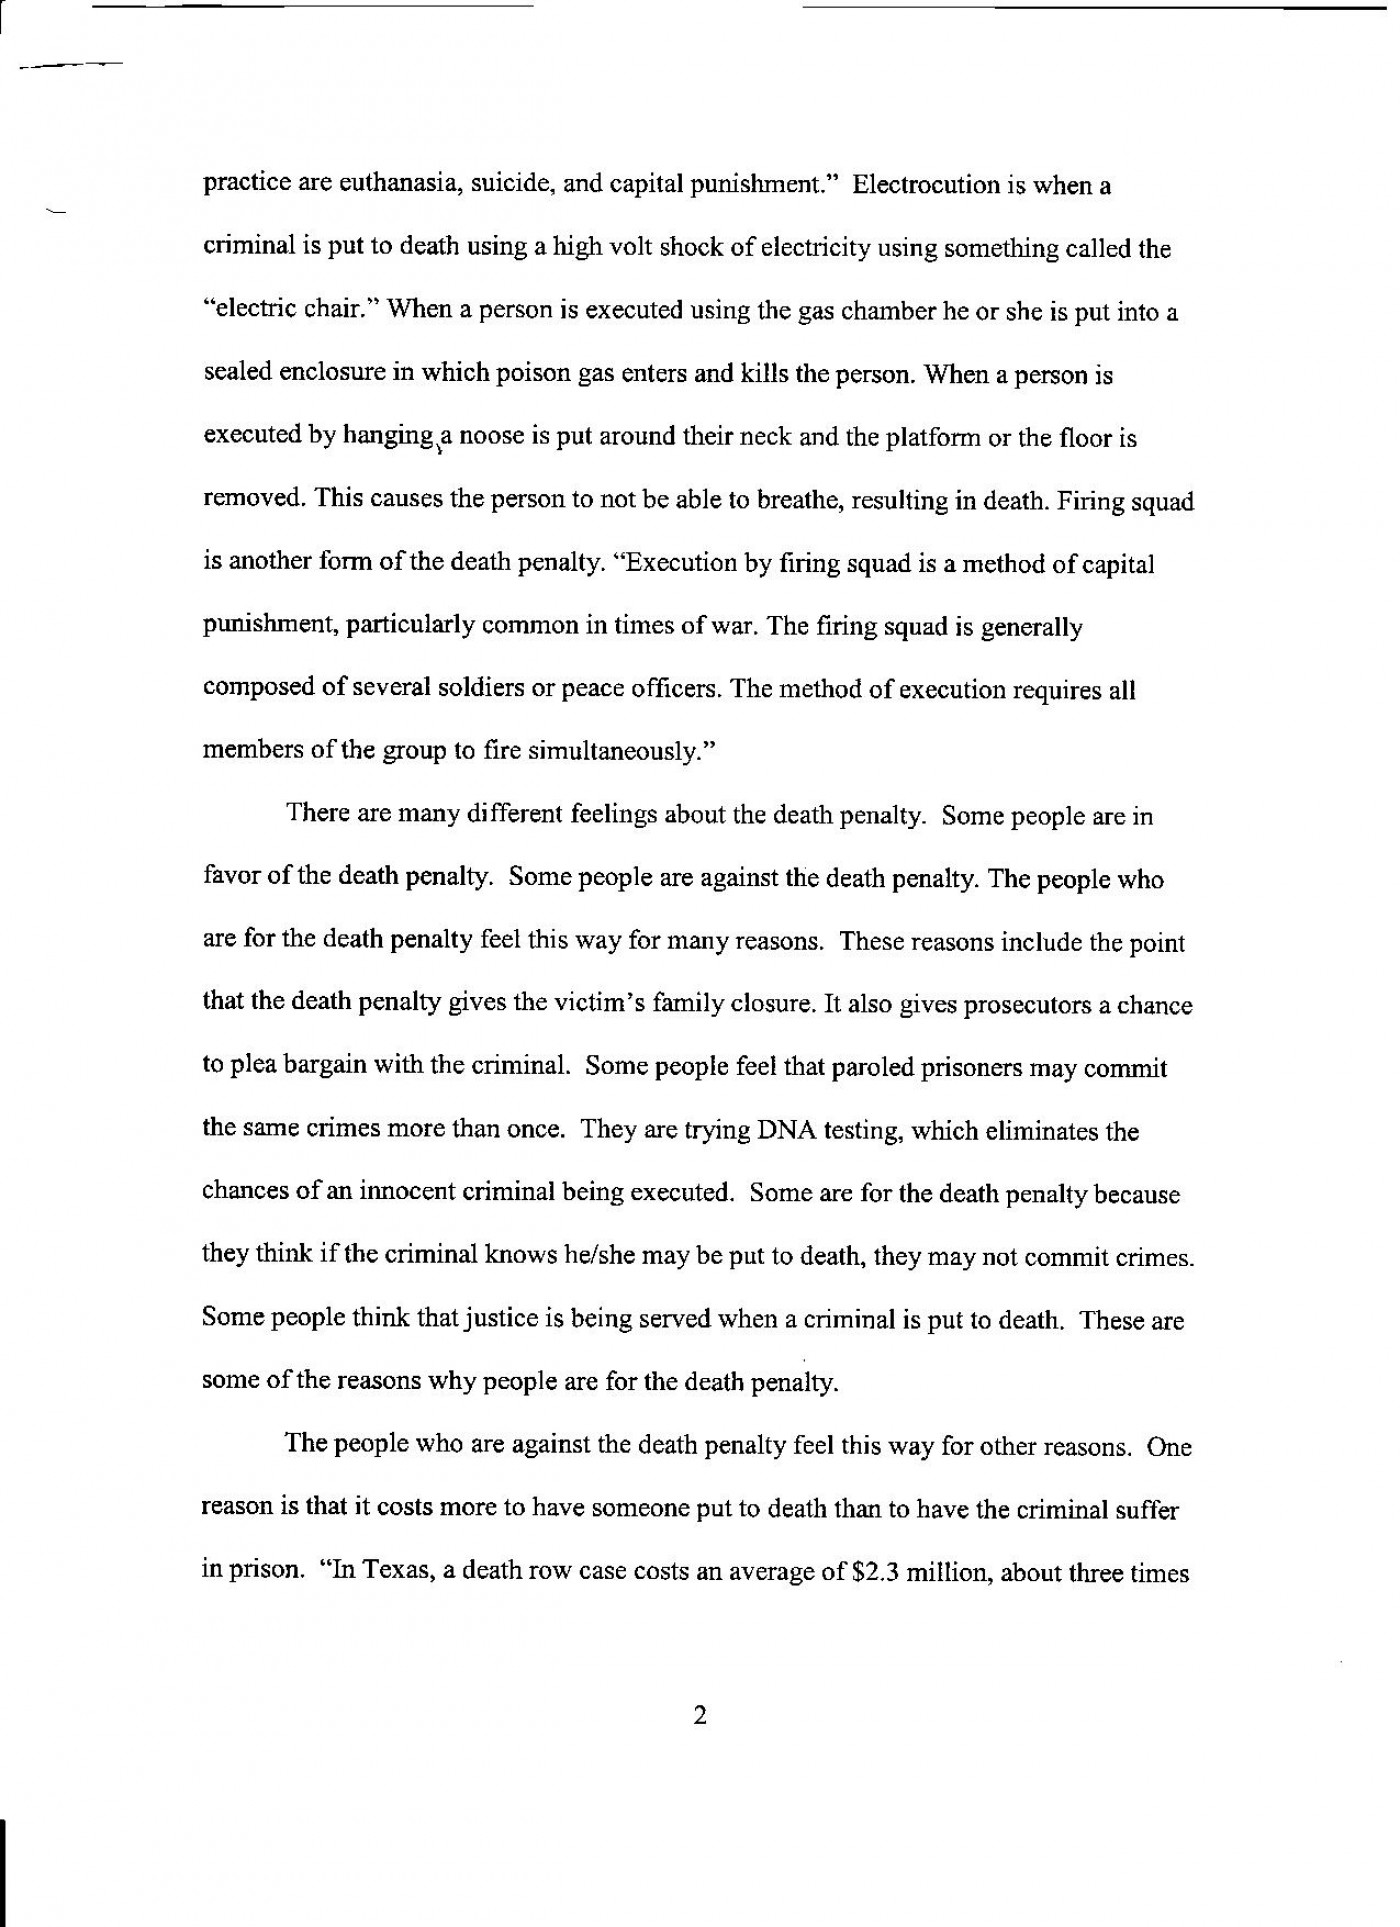 008 Essay Example Death Penalty Pg Best Rogerian Argument Sentence Abortion Style Topics 1400